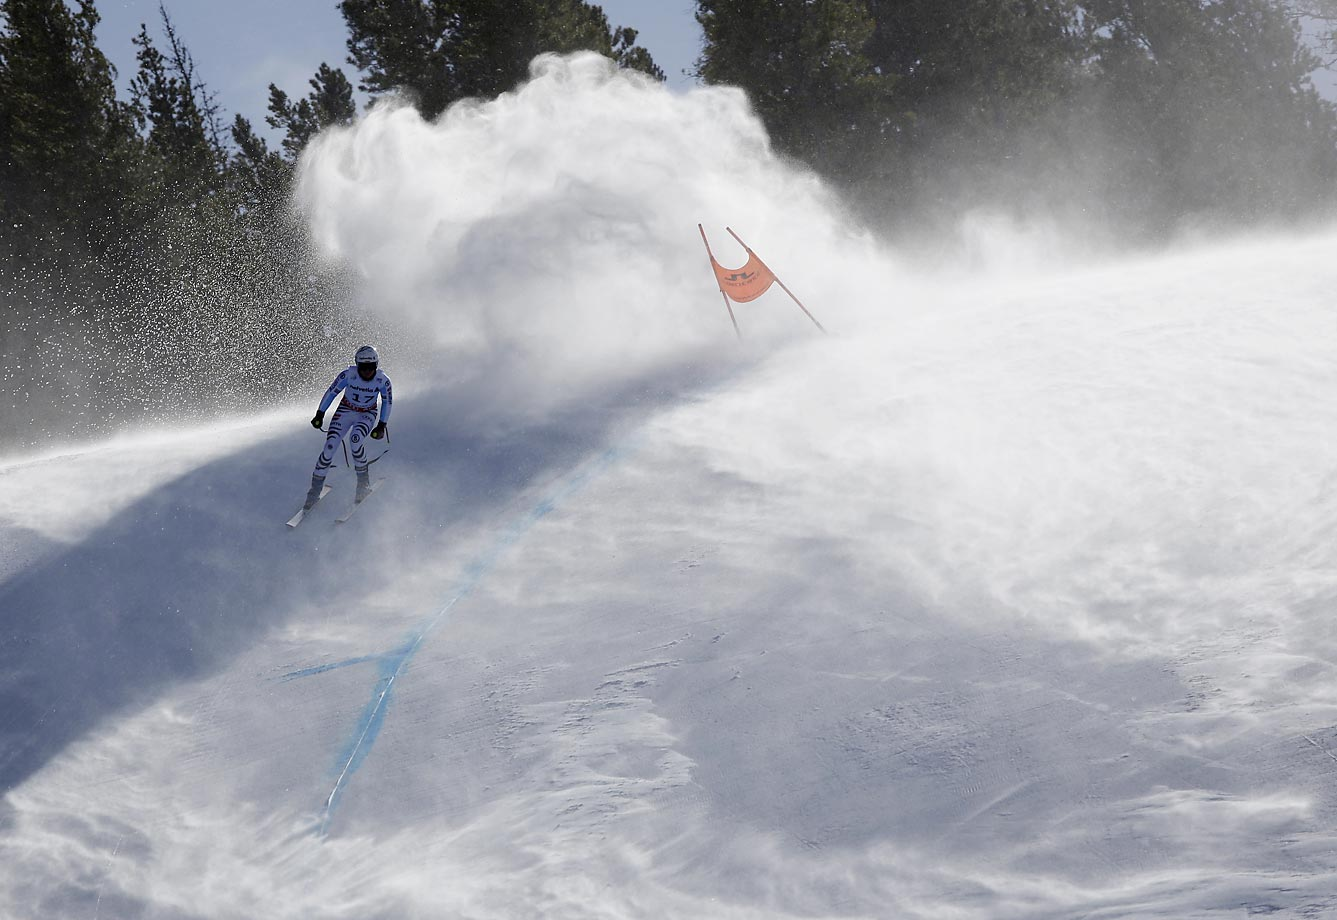 Viktoria Rebensburg of Germany during a practice run for the World Cup Championship downhill in Beaver Creek.